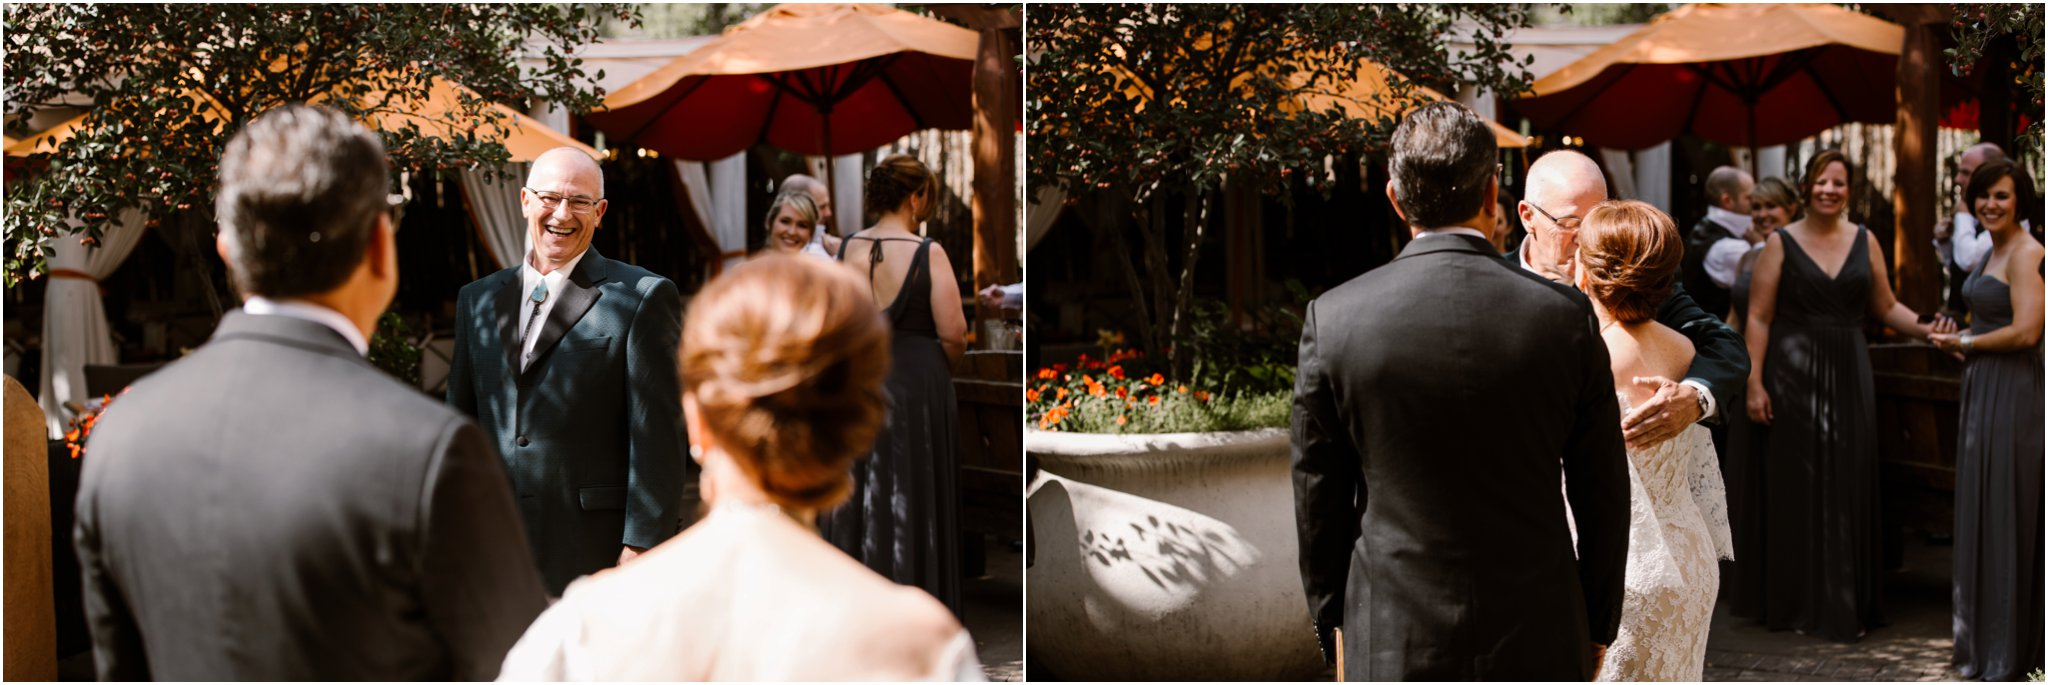 0012Santa Fe Wedding _Inn and Spa at Loretto Wedding, Inn and Spa at Loretto wedding, Santa Fe wedding photographers, blue rose photography